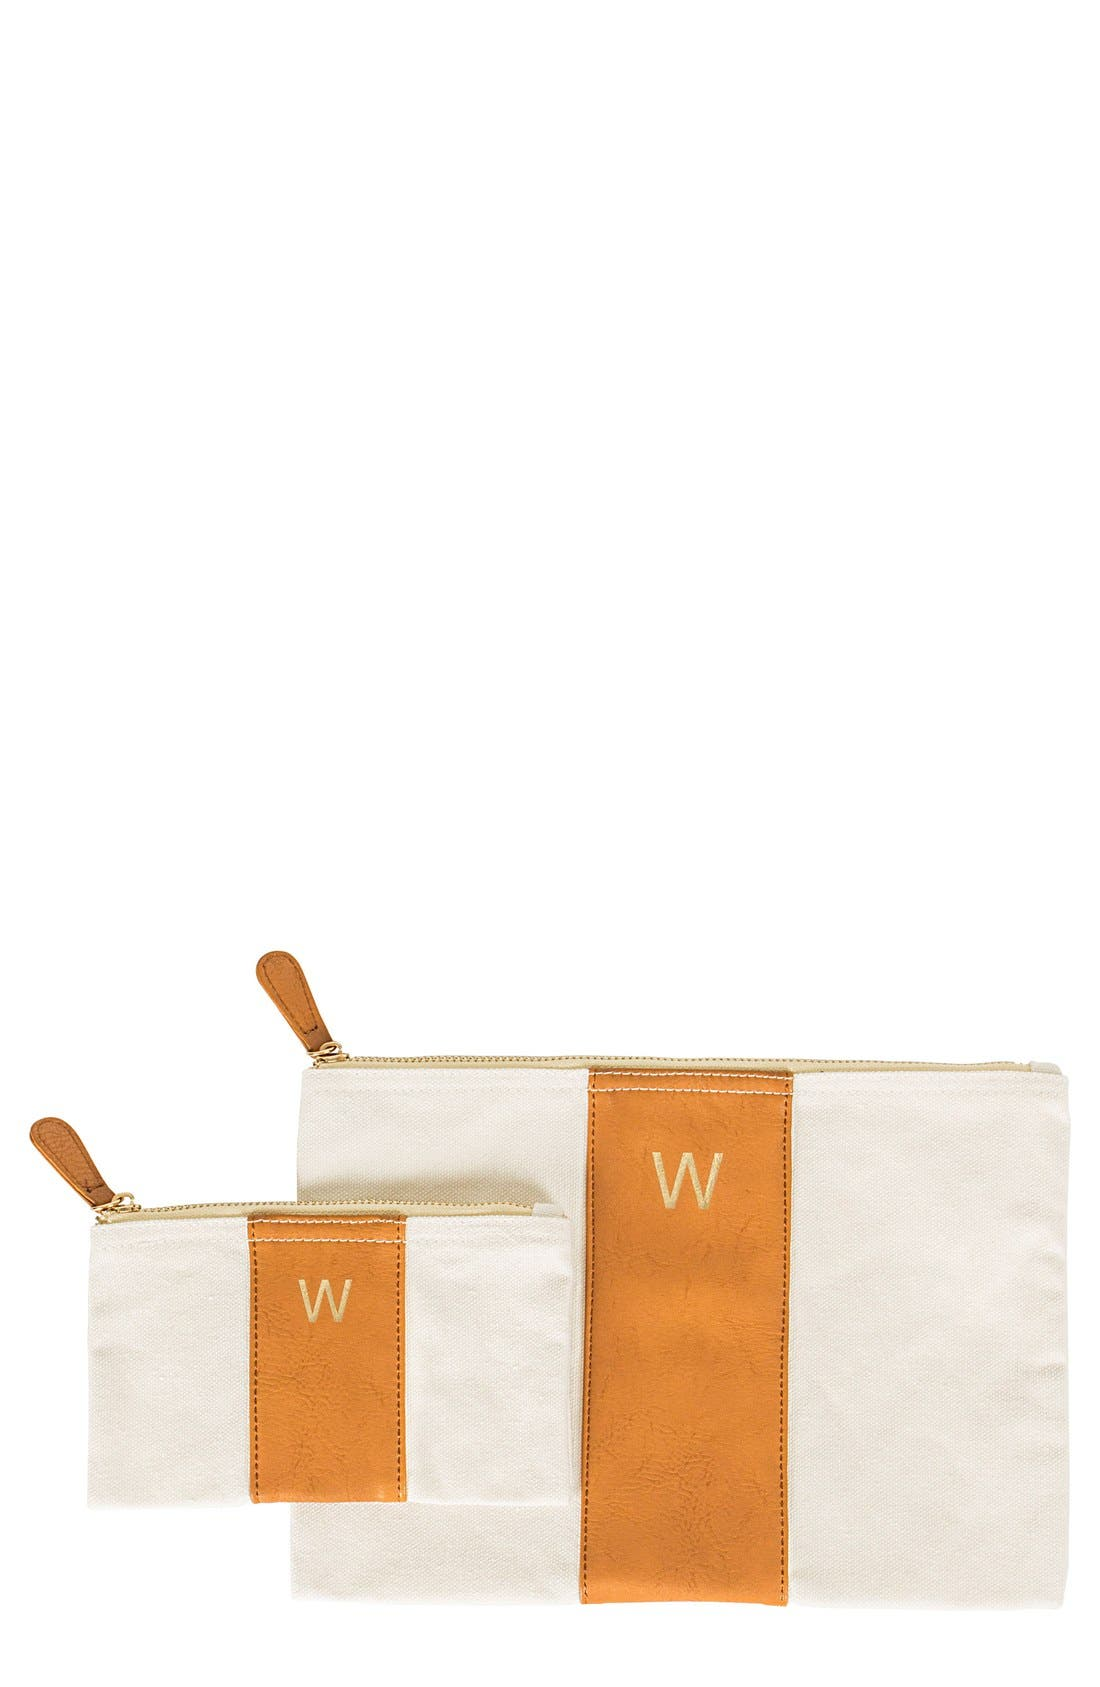 Cathy's Concepts Personalized Faux Leather Clutch